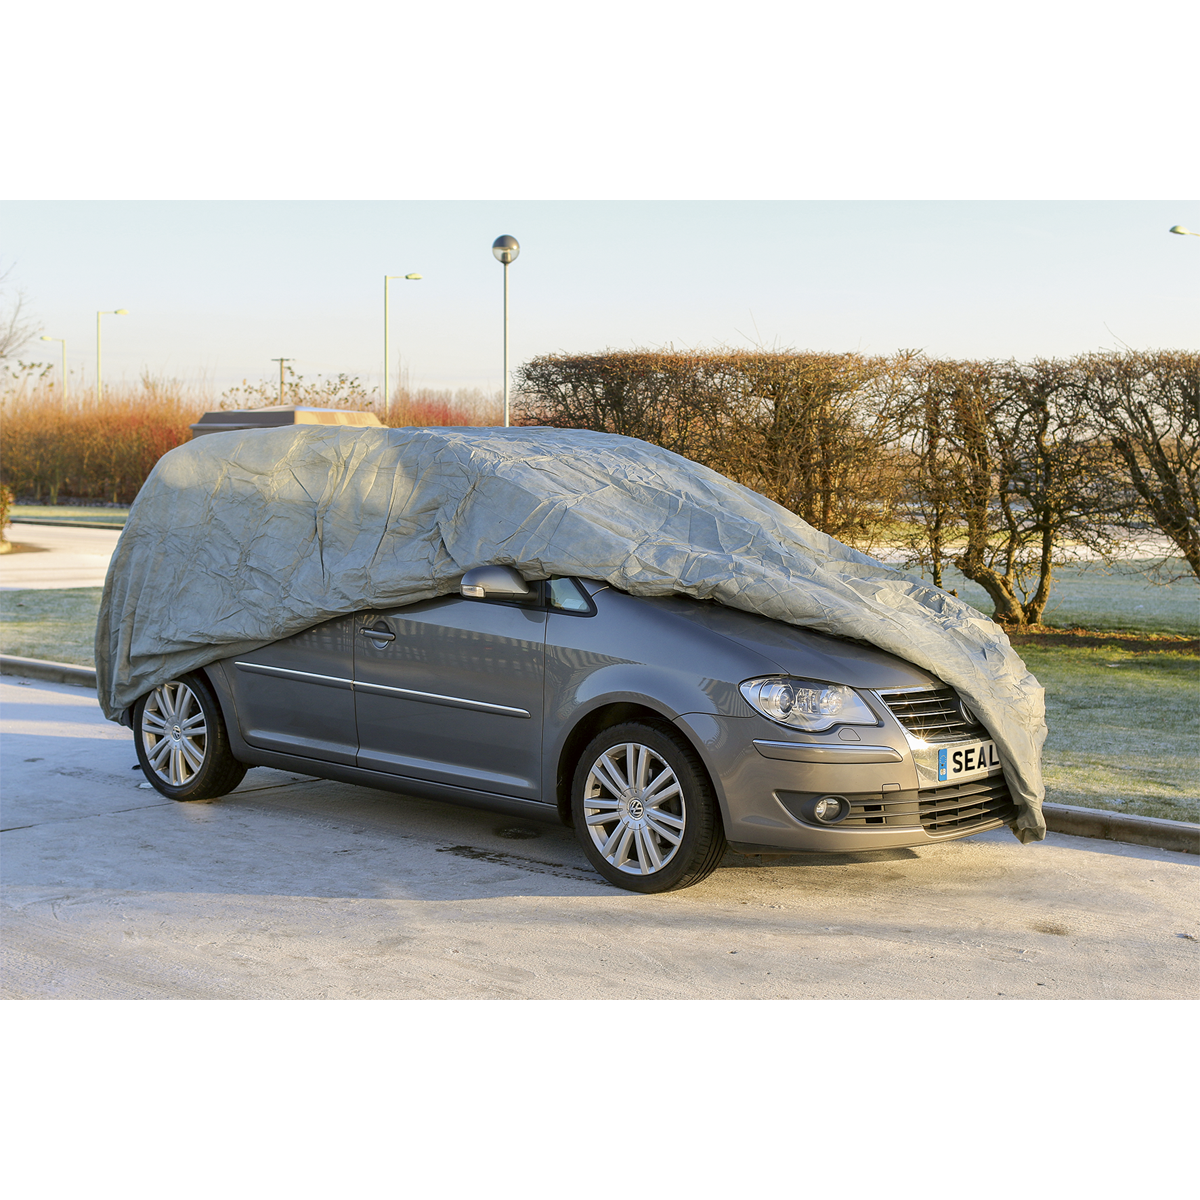 All Seasons Car Cover 3-Layer - XX-Large